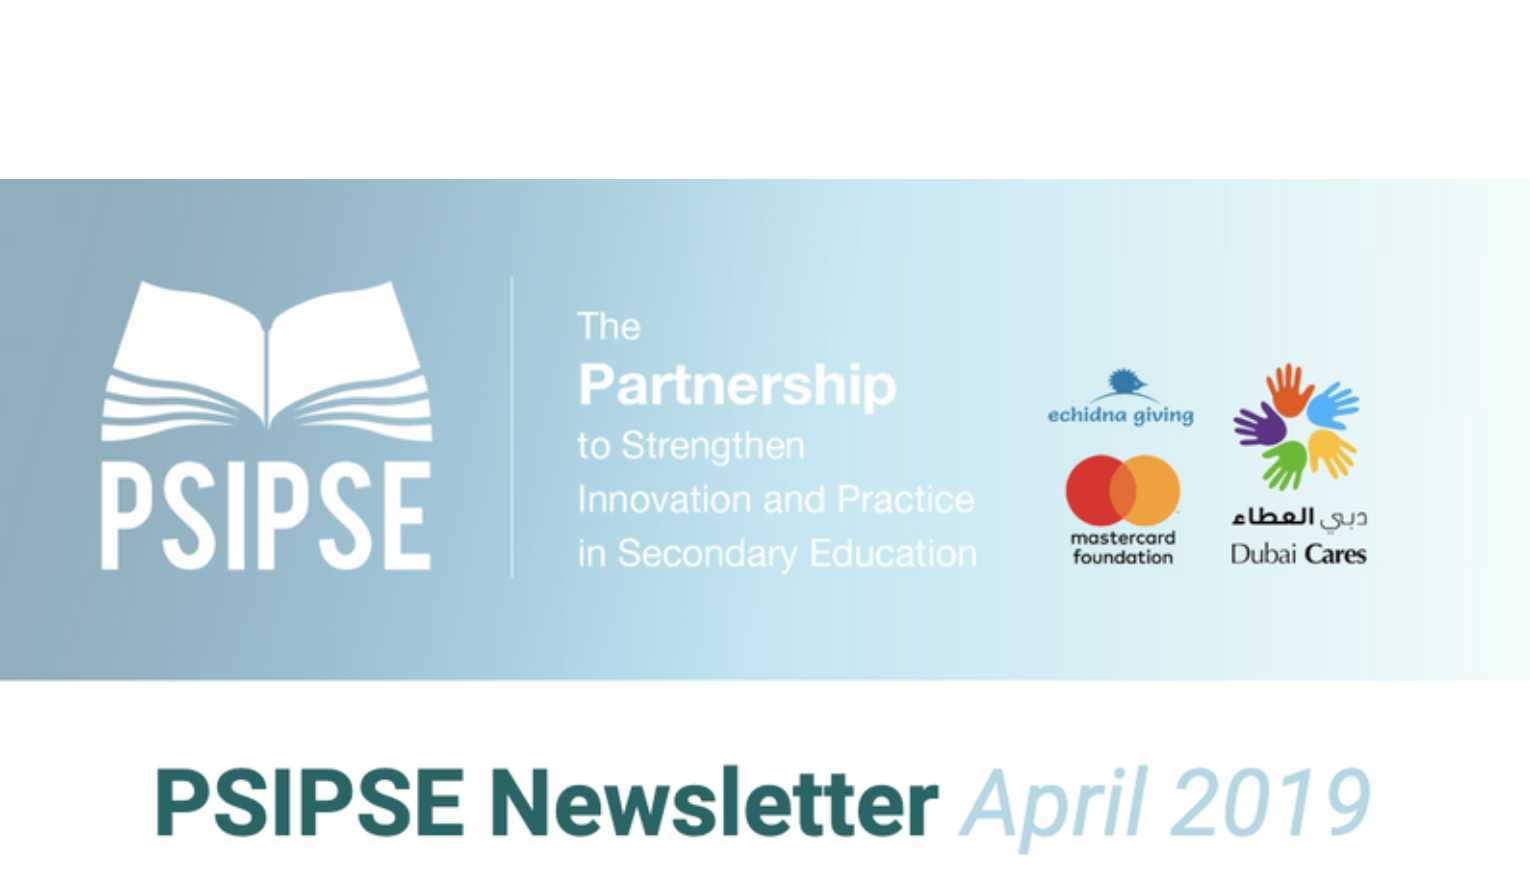 PSIPSE Newsletter is out!